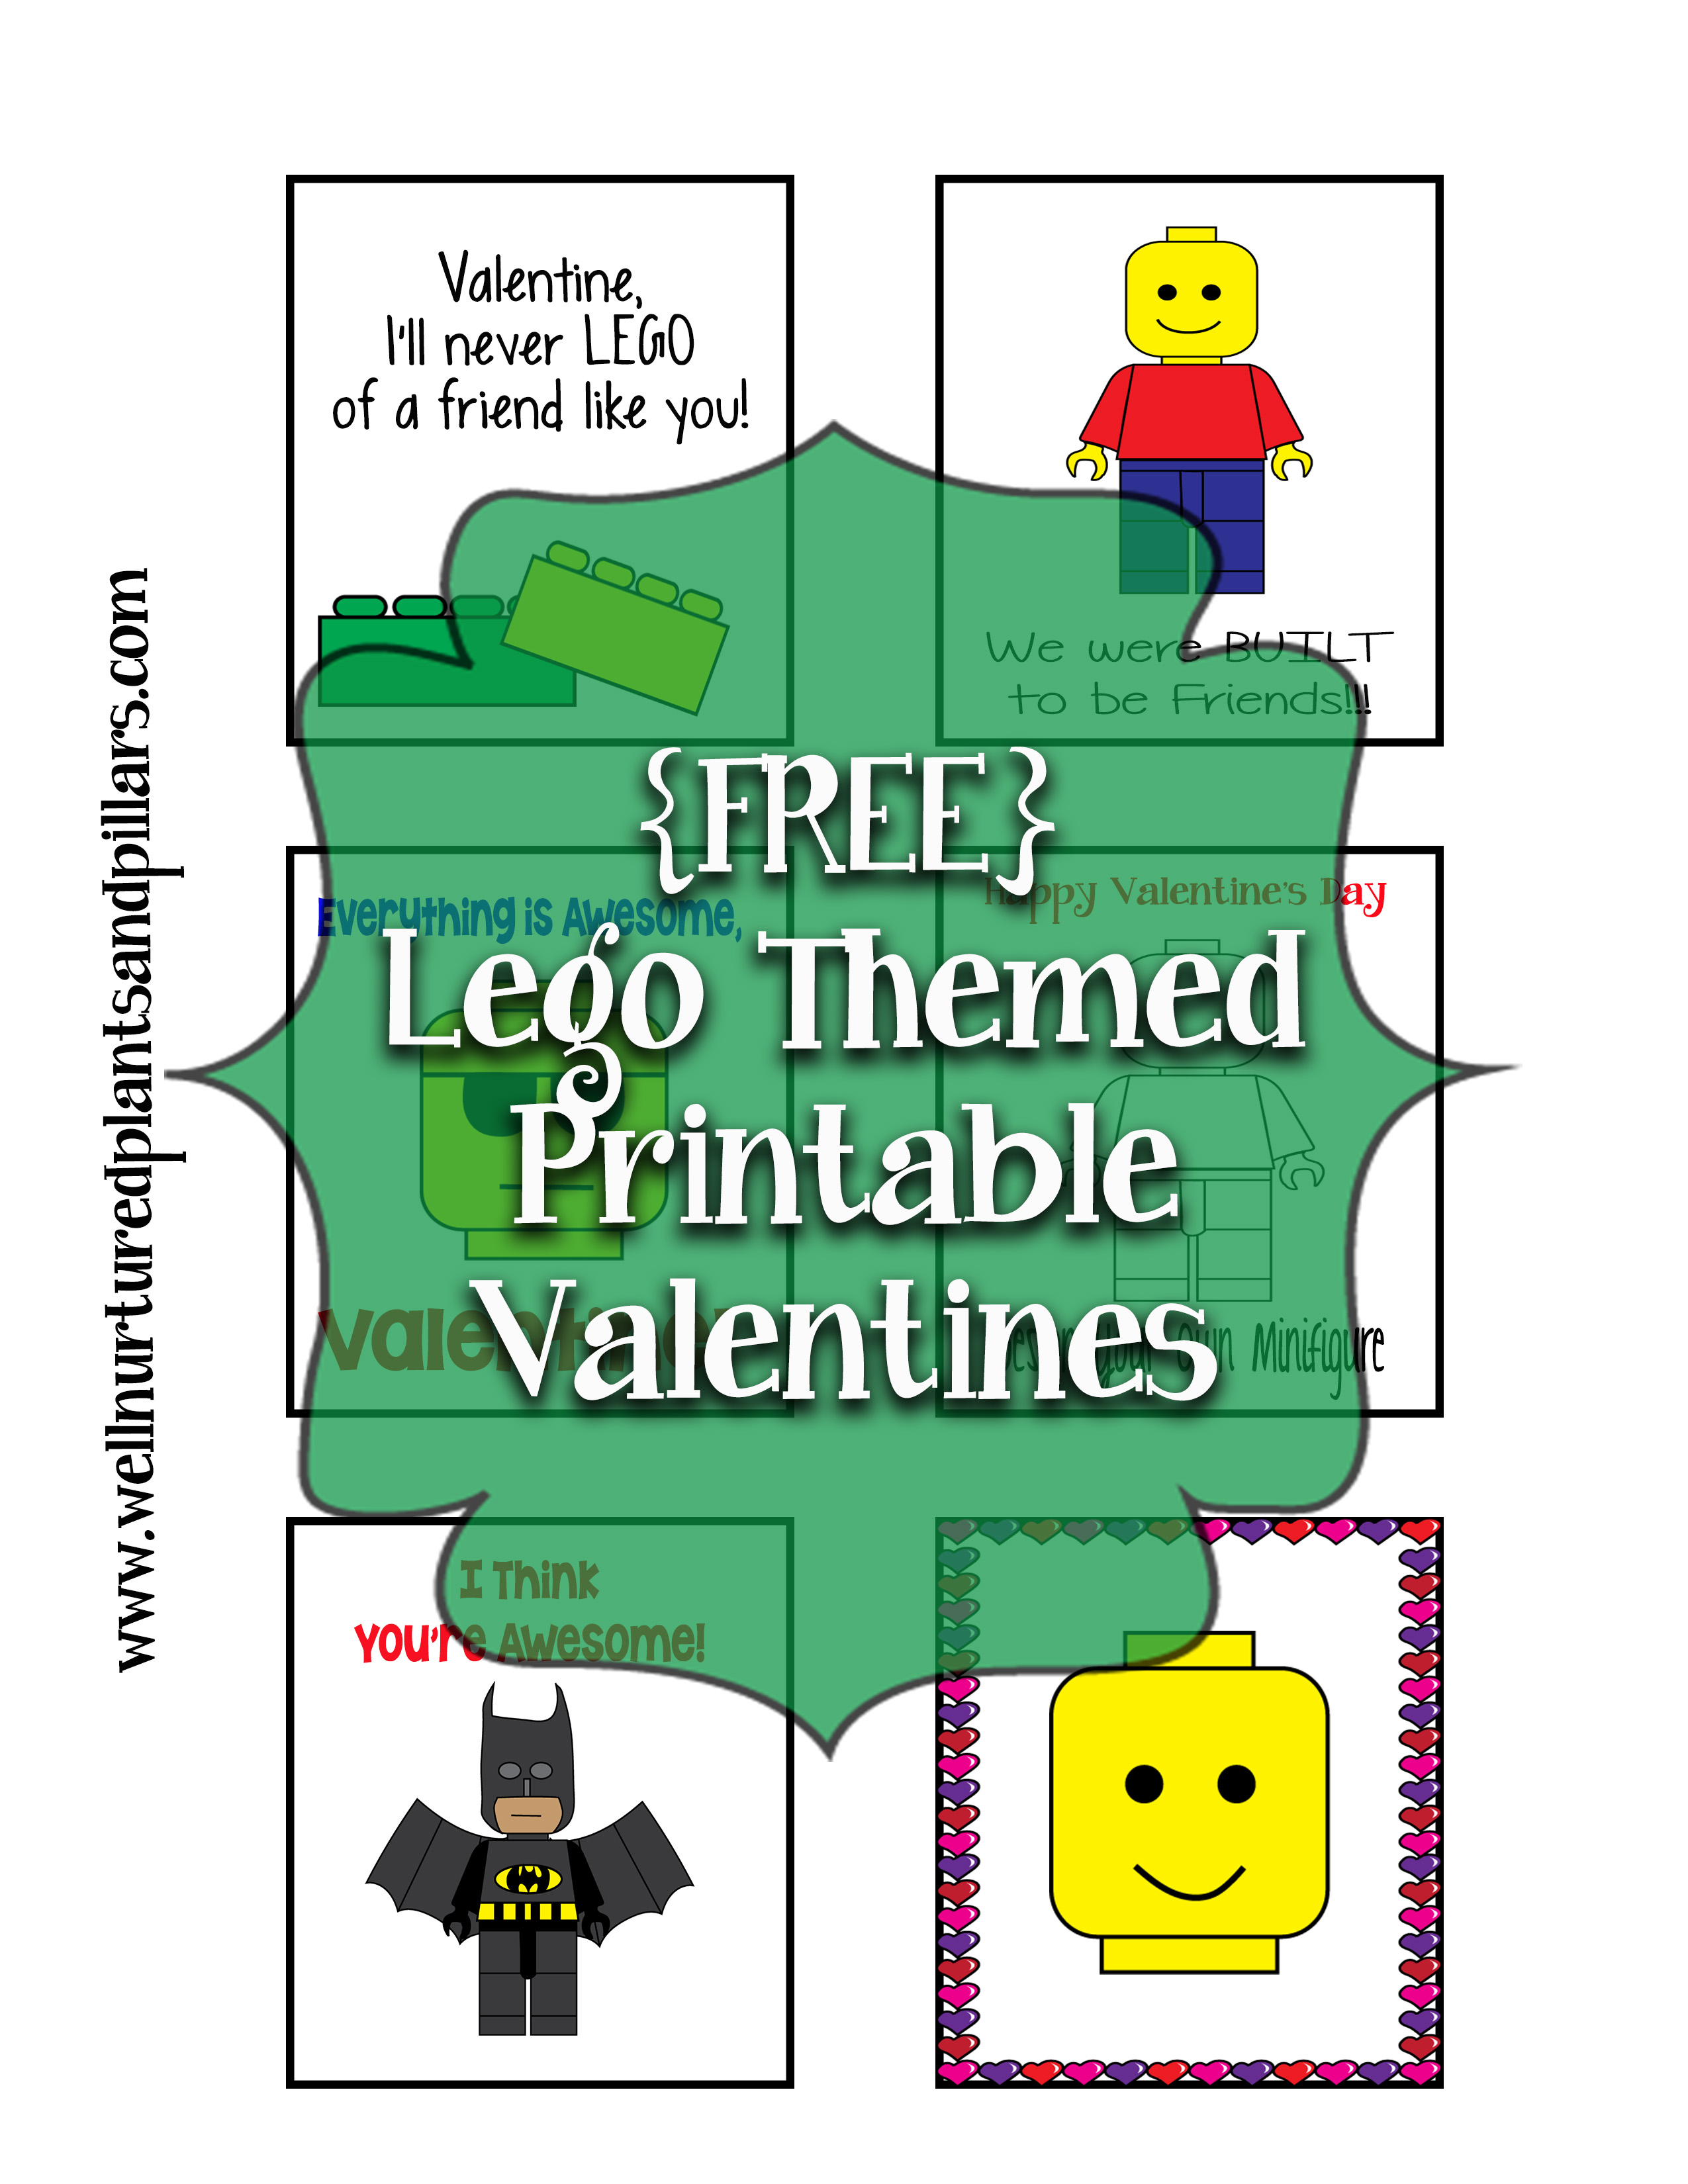 Free Lego Themed Printable Valentines Cards